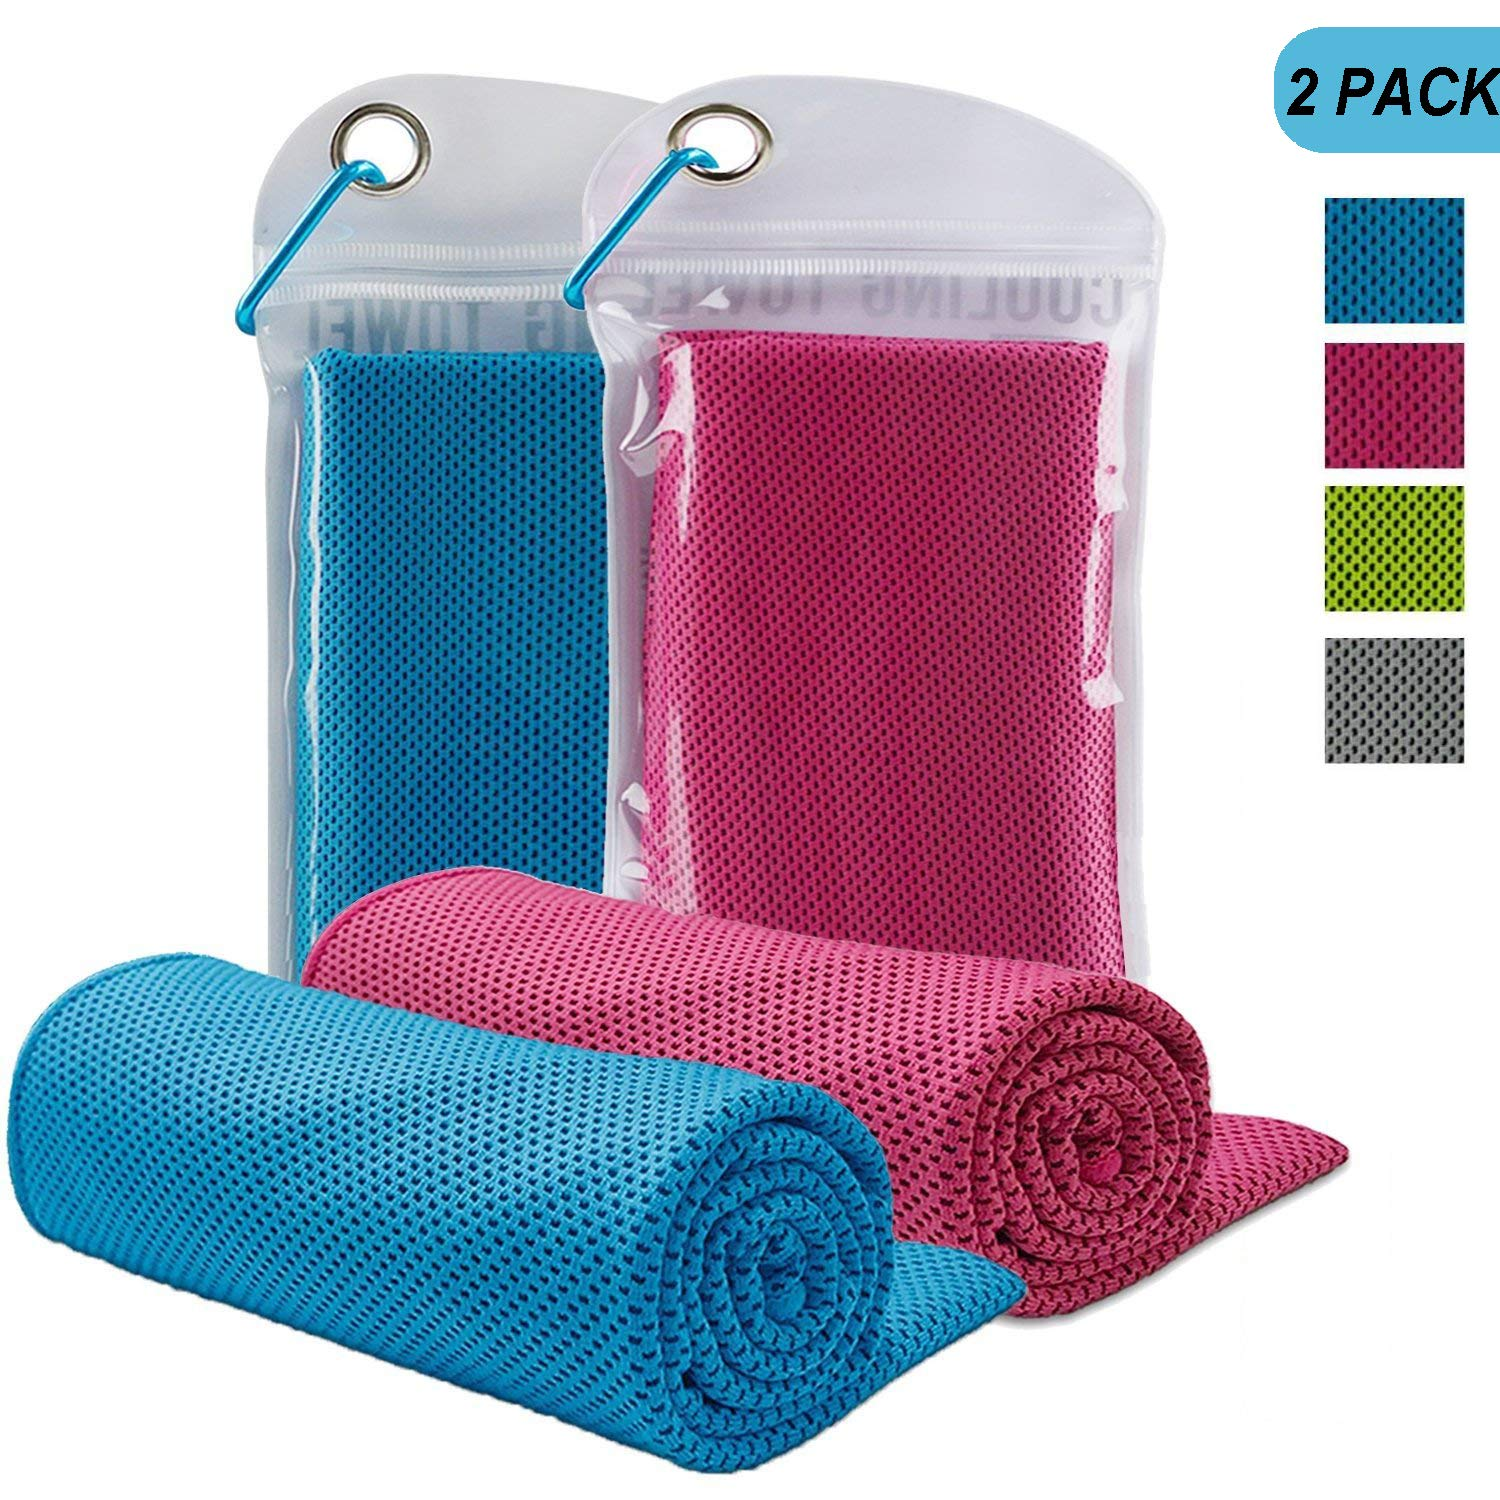 LENPOW Cooling Towel Ice Cold Scarf Chilling Neck Wrap Ultimate Microfiber Bandana Evaporative Chilly Extra Soft washcloth washrag for Sport workout gym fitness Yoga Golf Travel Instant Cooling Relief